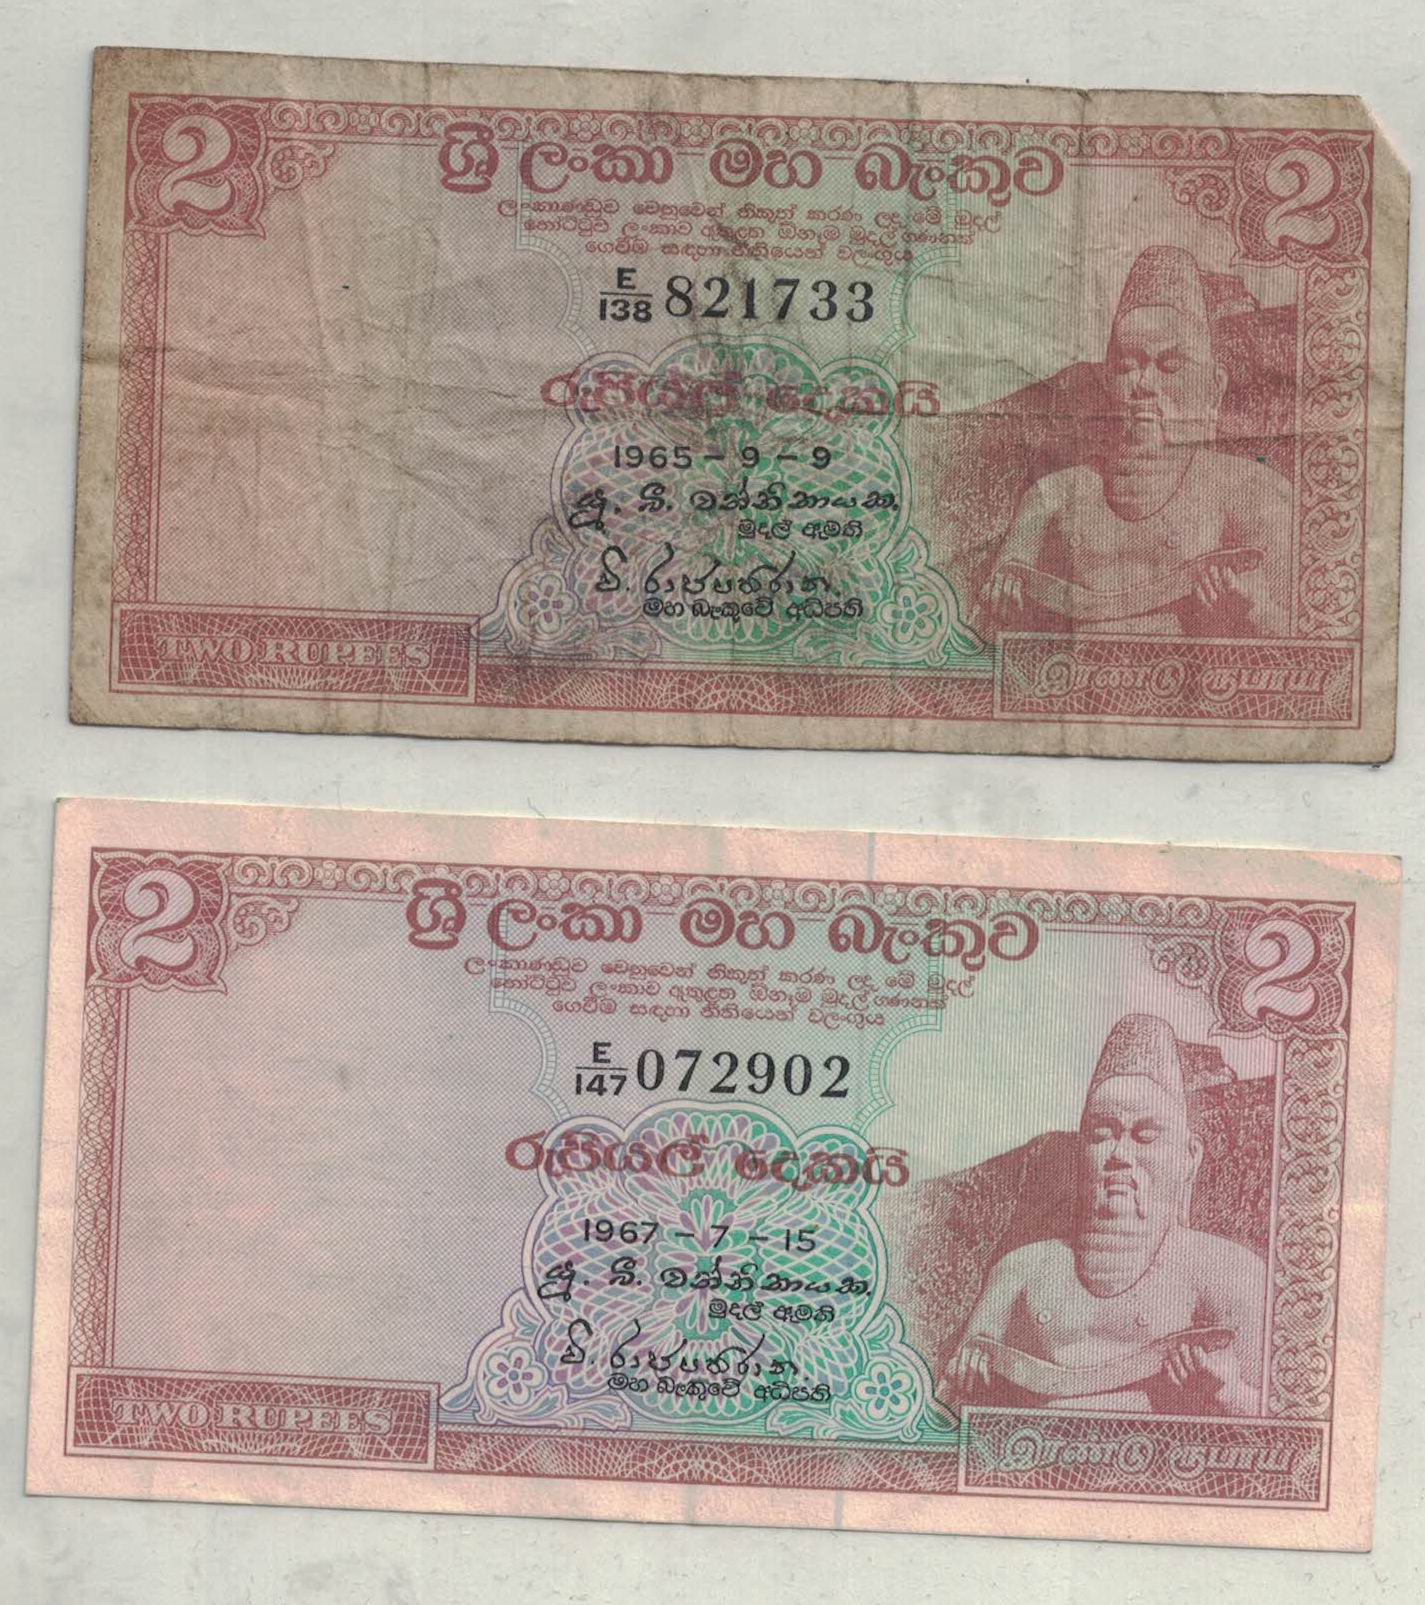 Two rupee